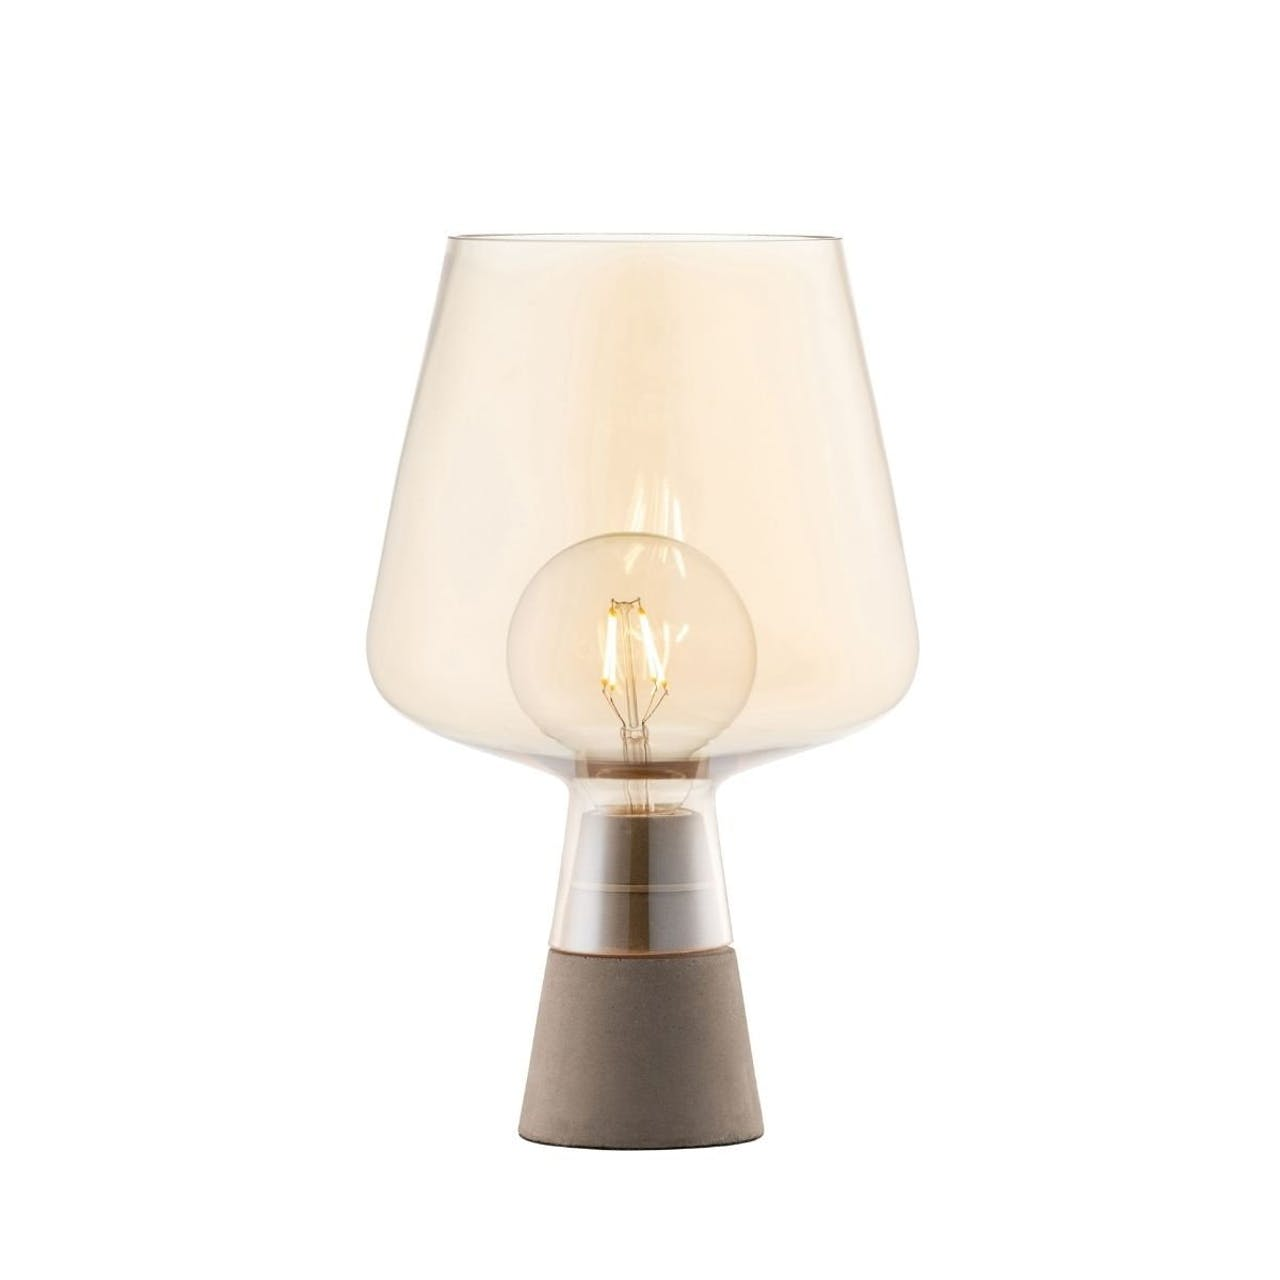 Galway Crystal Large glass table lamp